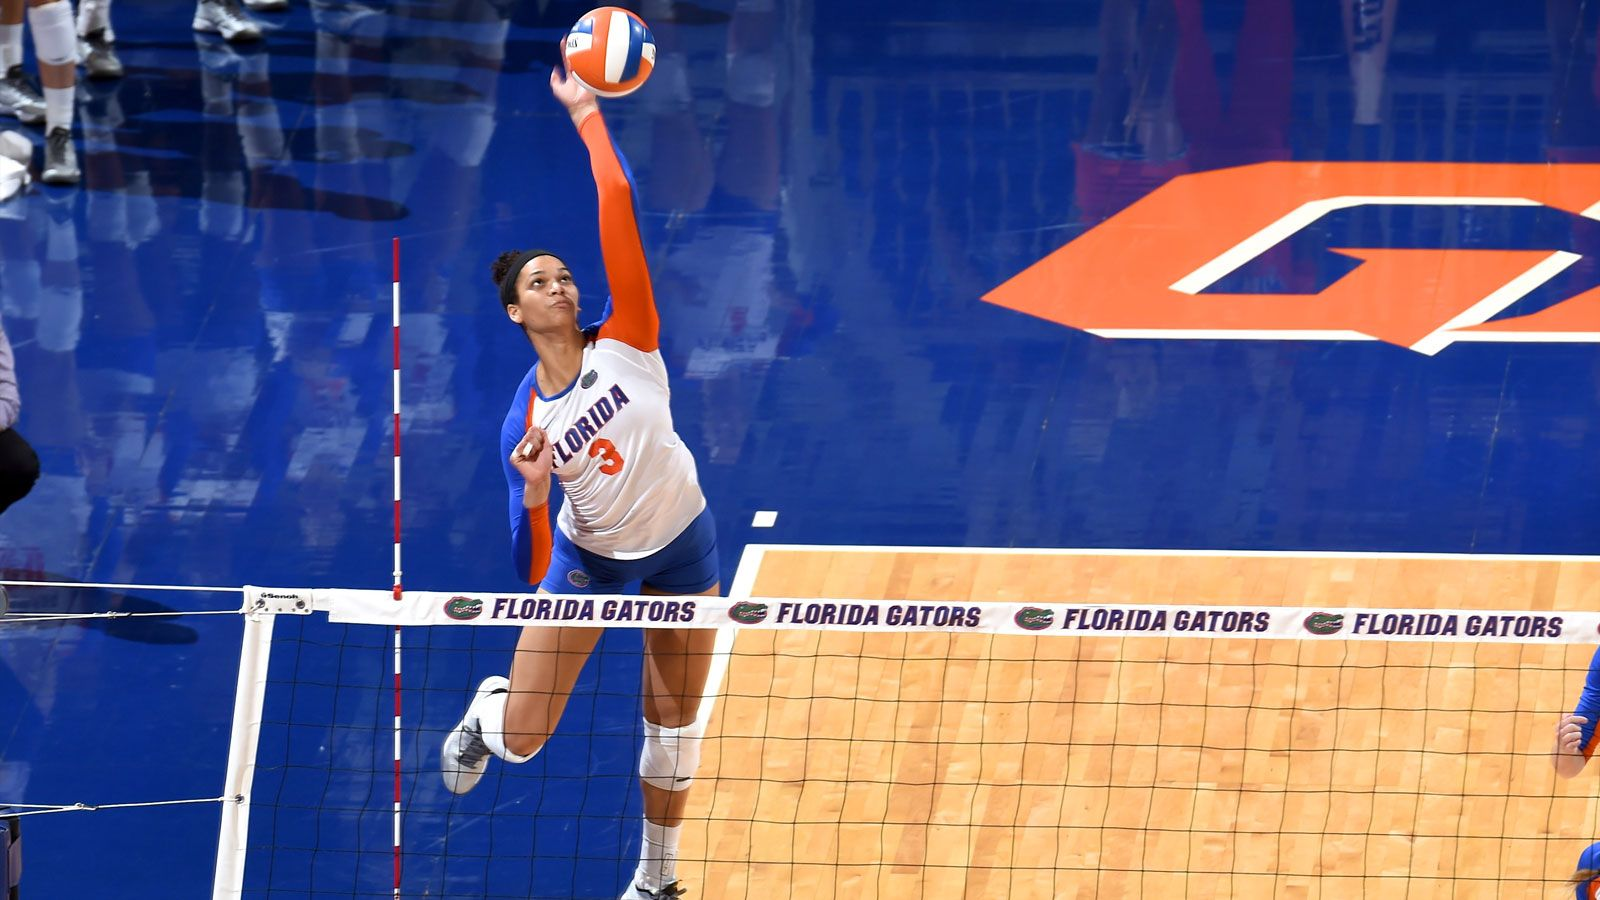 2014 SEC Volleyball Awards announced